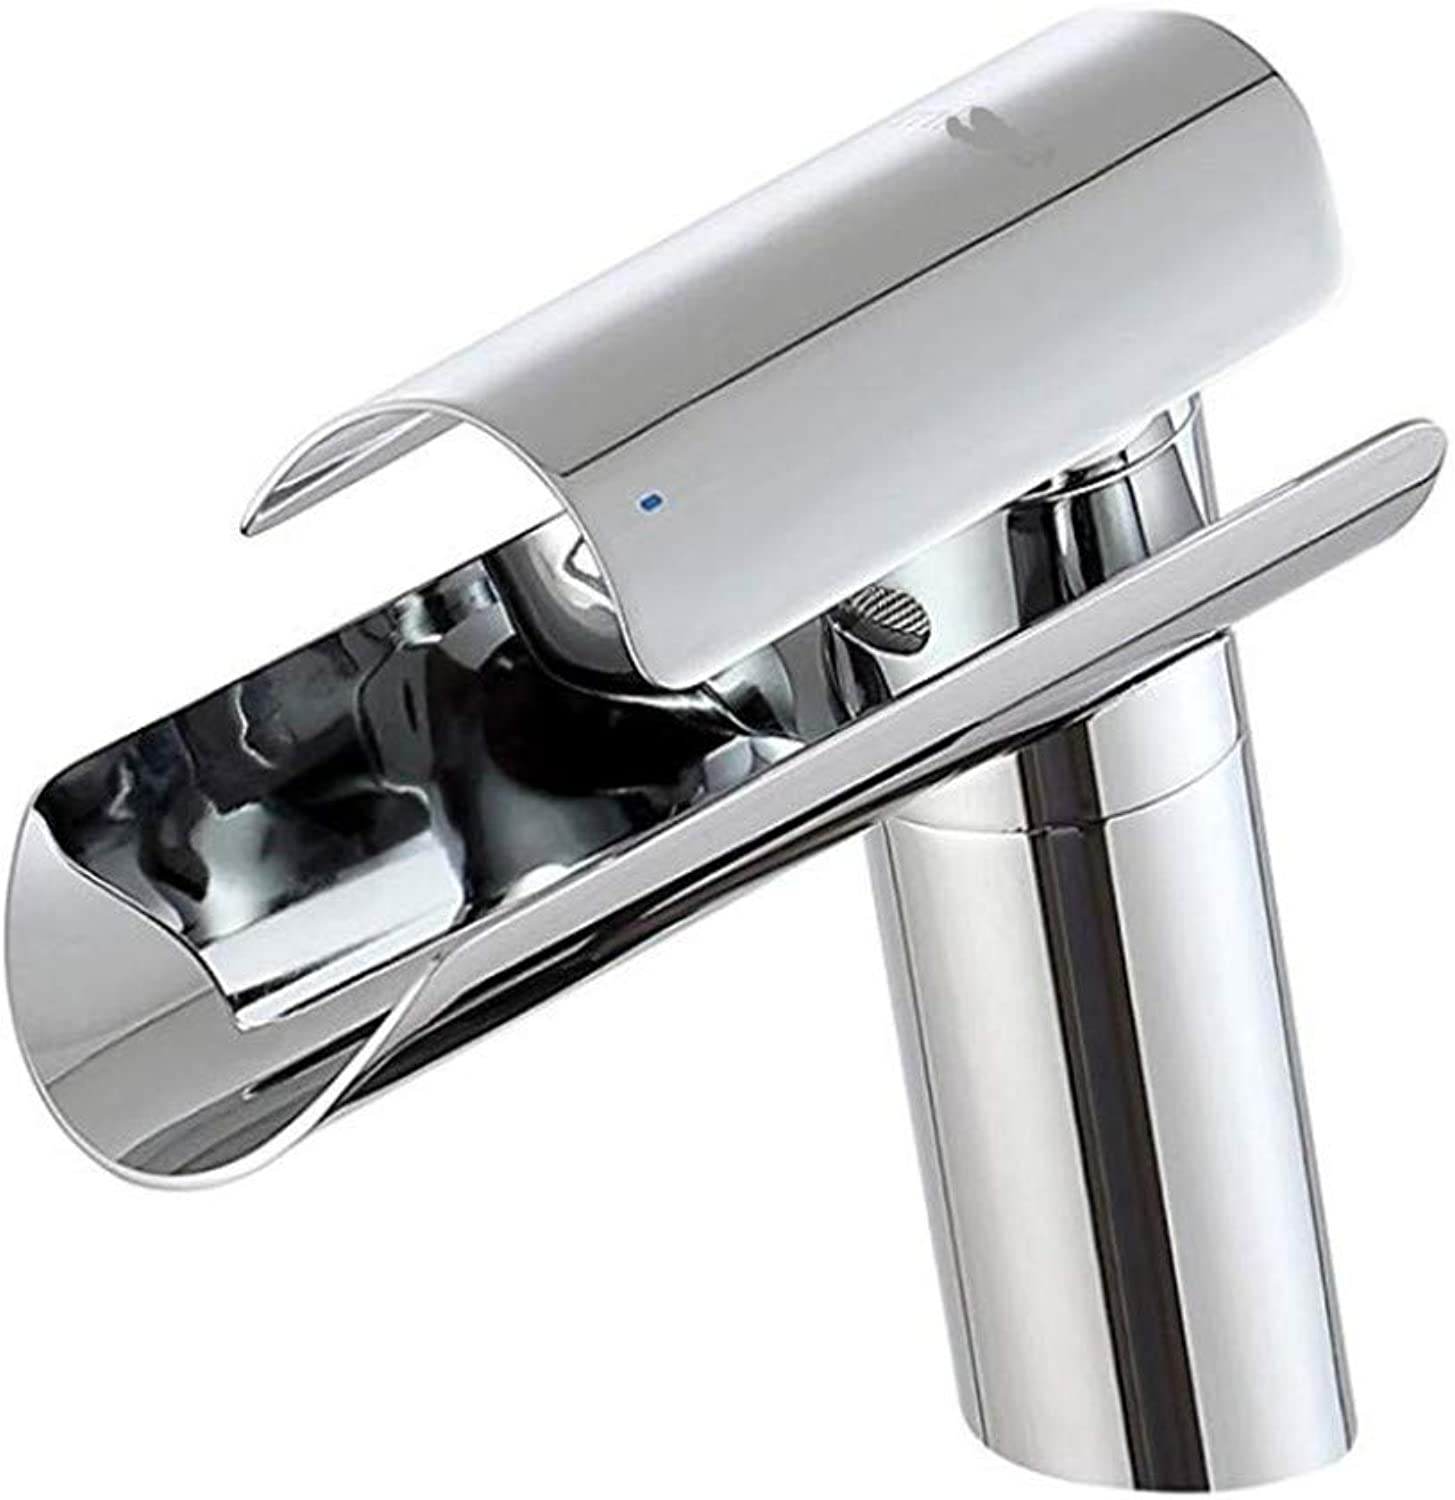 Pull Out The Pull Down Stainless Steelwaterfall Bathroom Faucet Stainless Steel Spout Wash Basin Mixer Tap